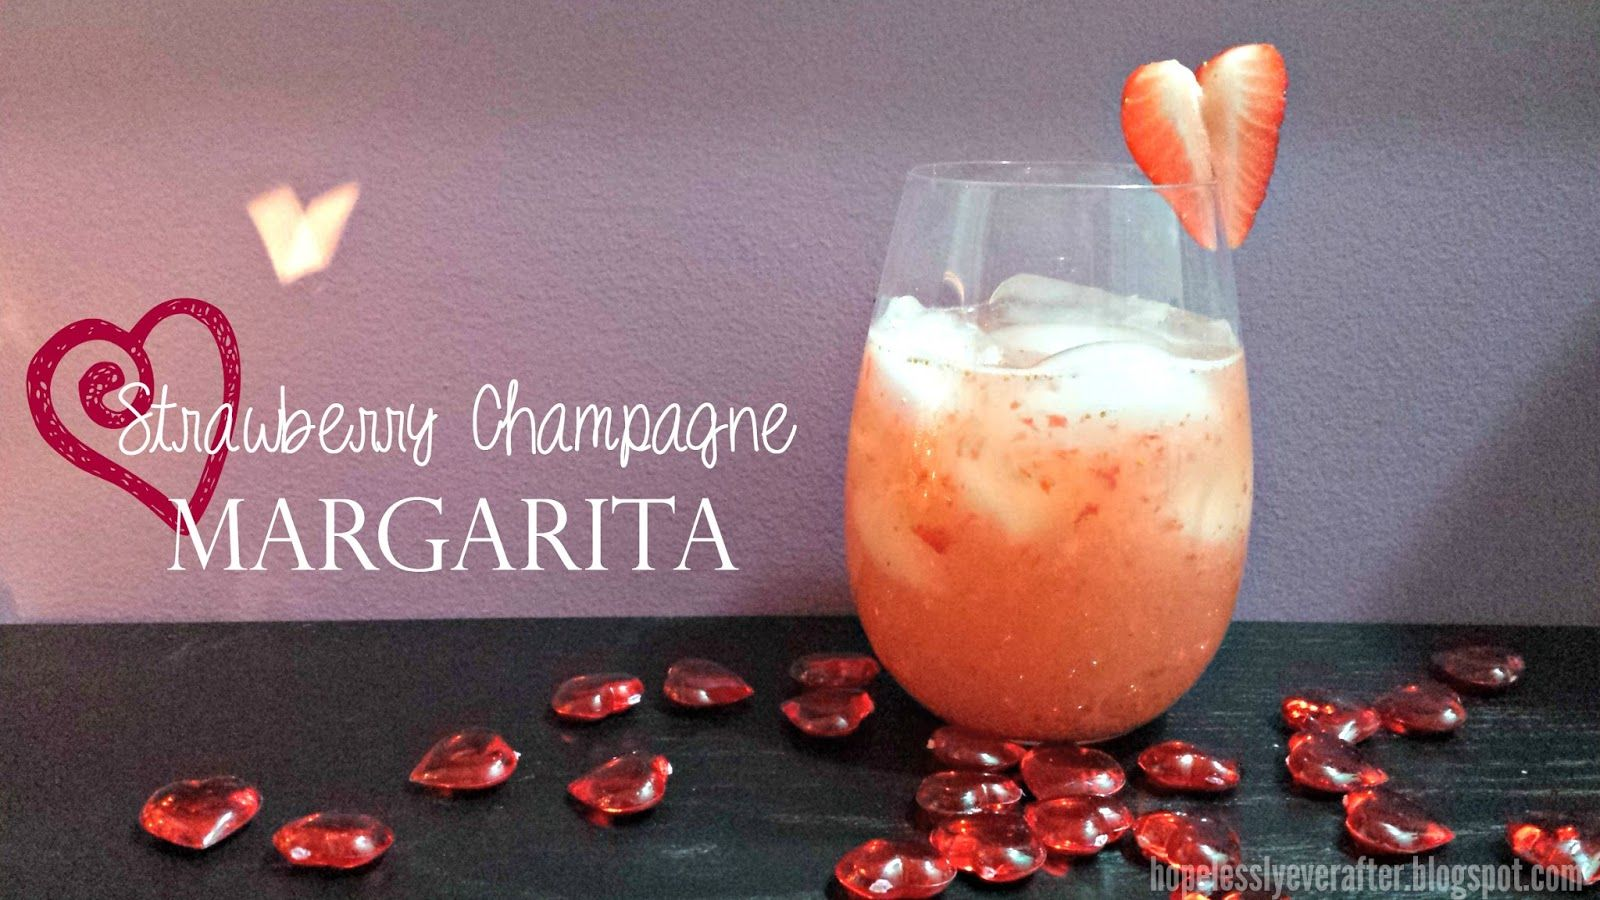 Strawberry Champagne Margarita - sweet and delicious and perfect for a romantic Valentine's Day dinner with your other half. Super easy to make, and so refreshing!